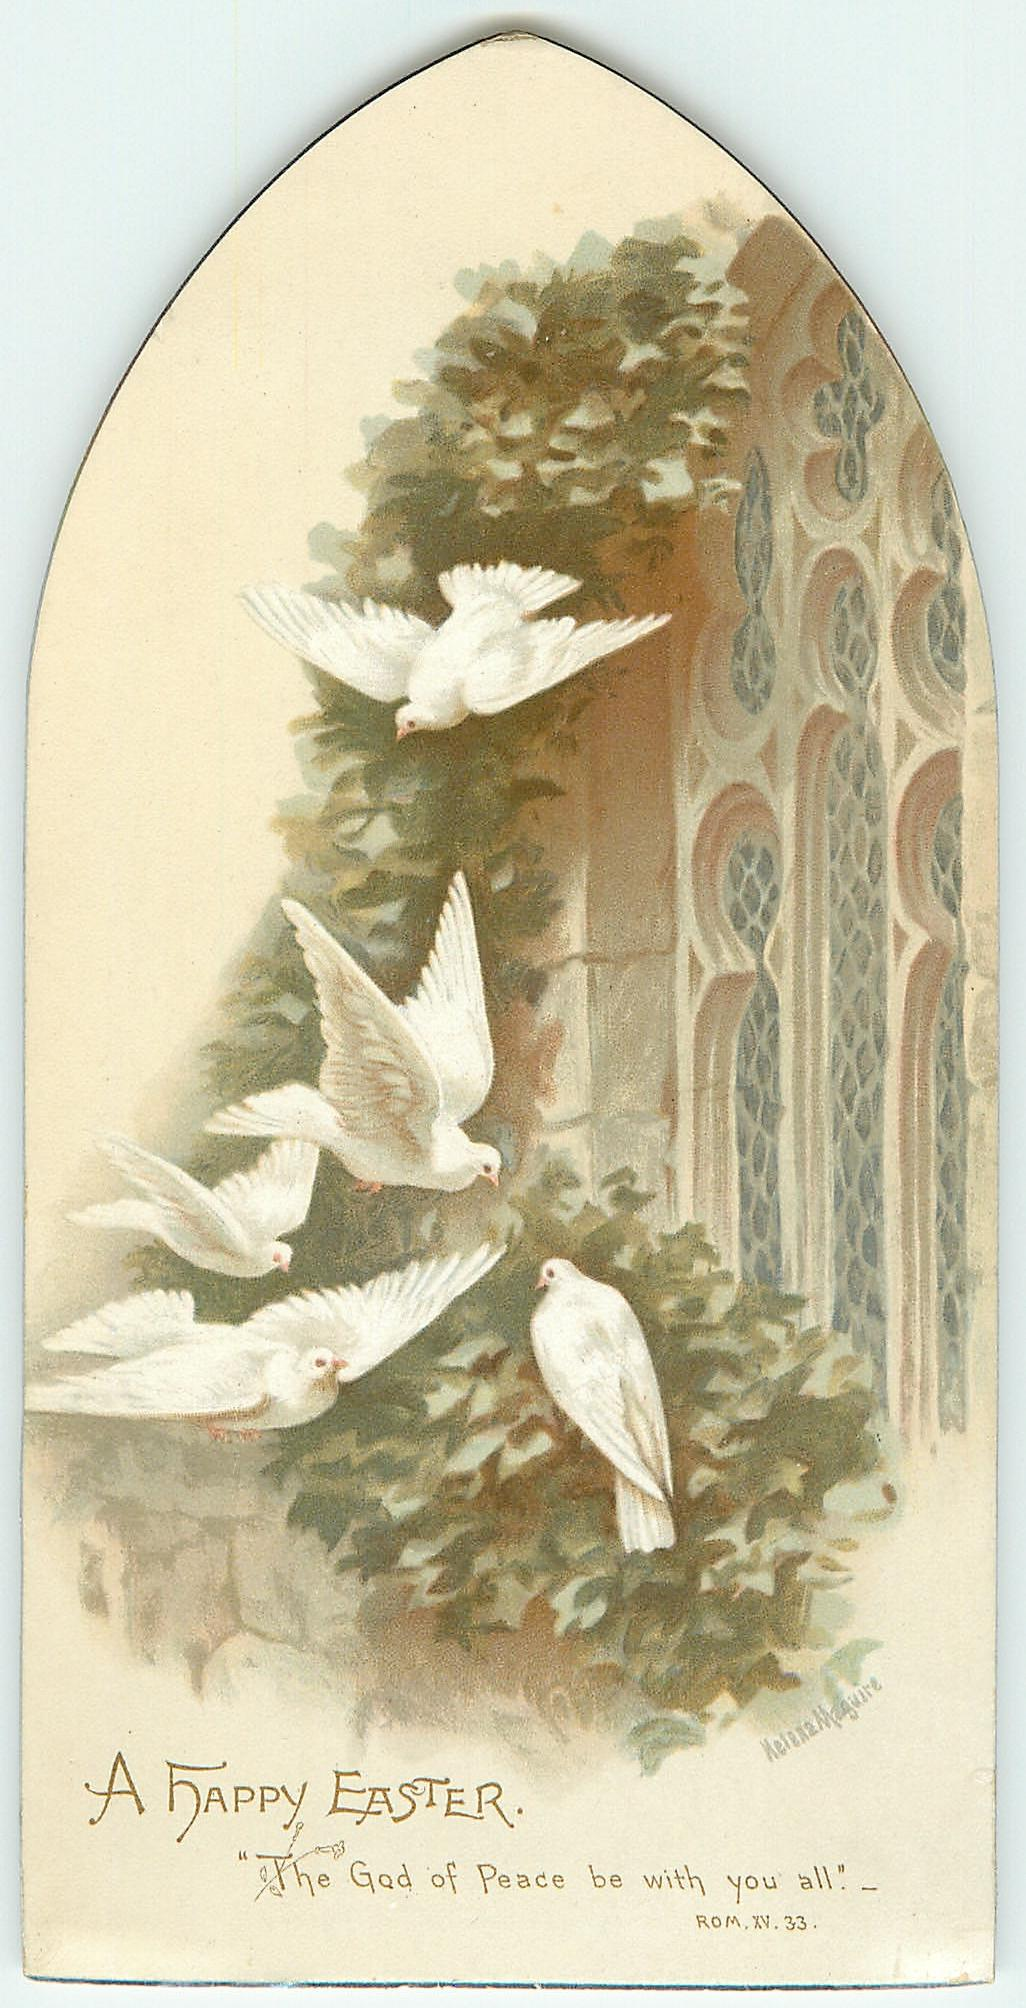 doves with ivy on outside church window ledge